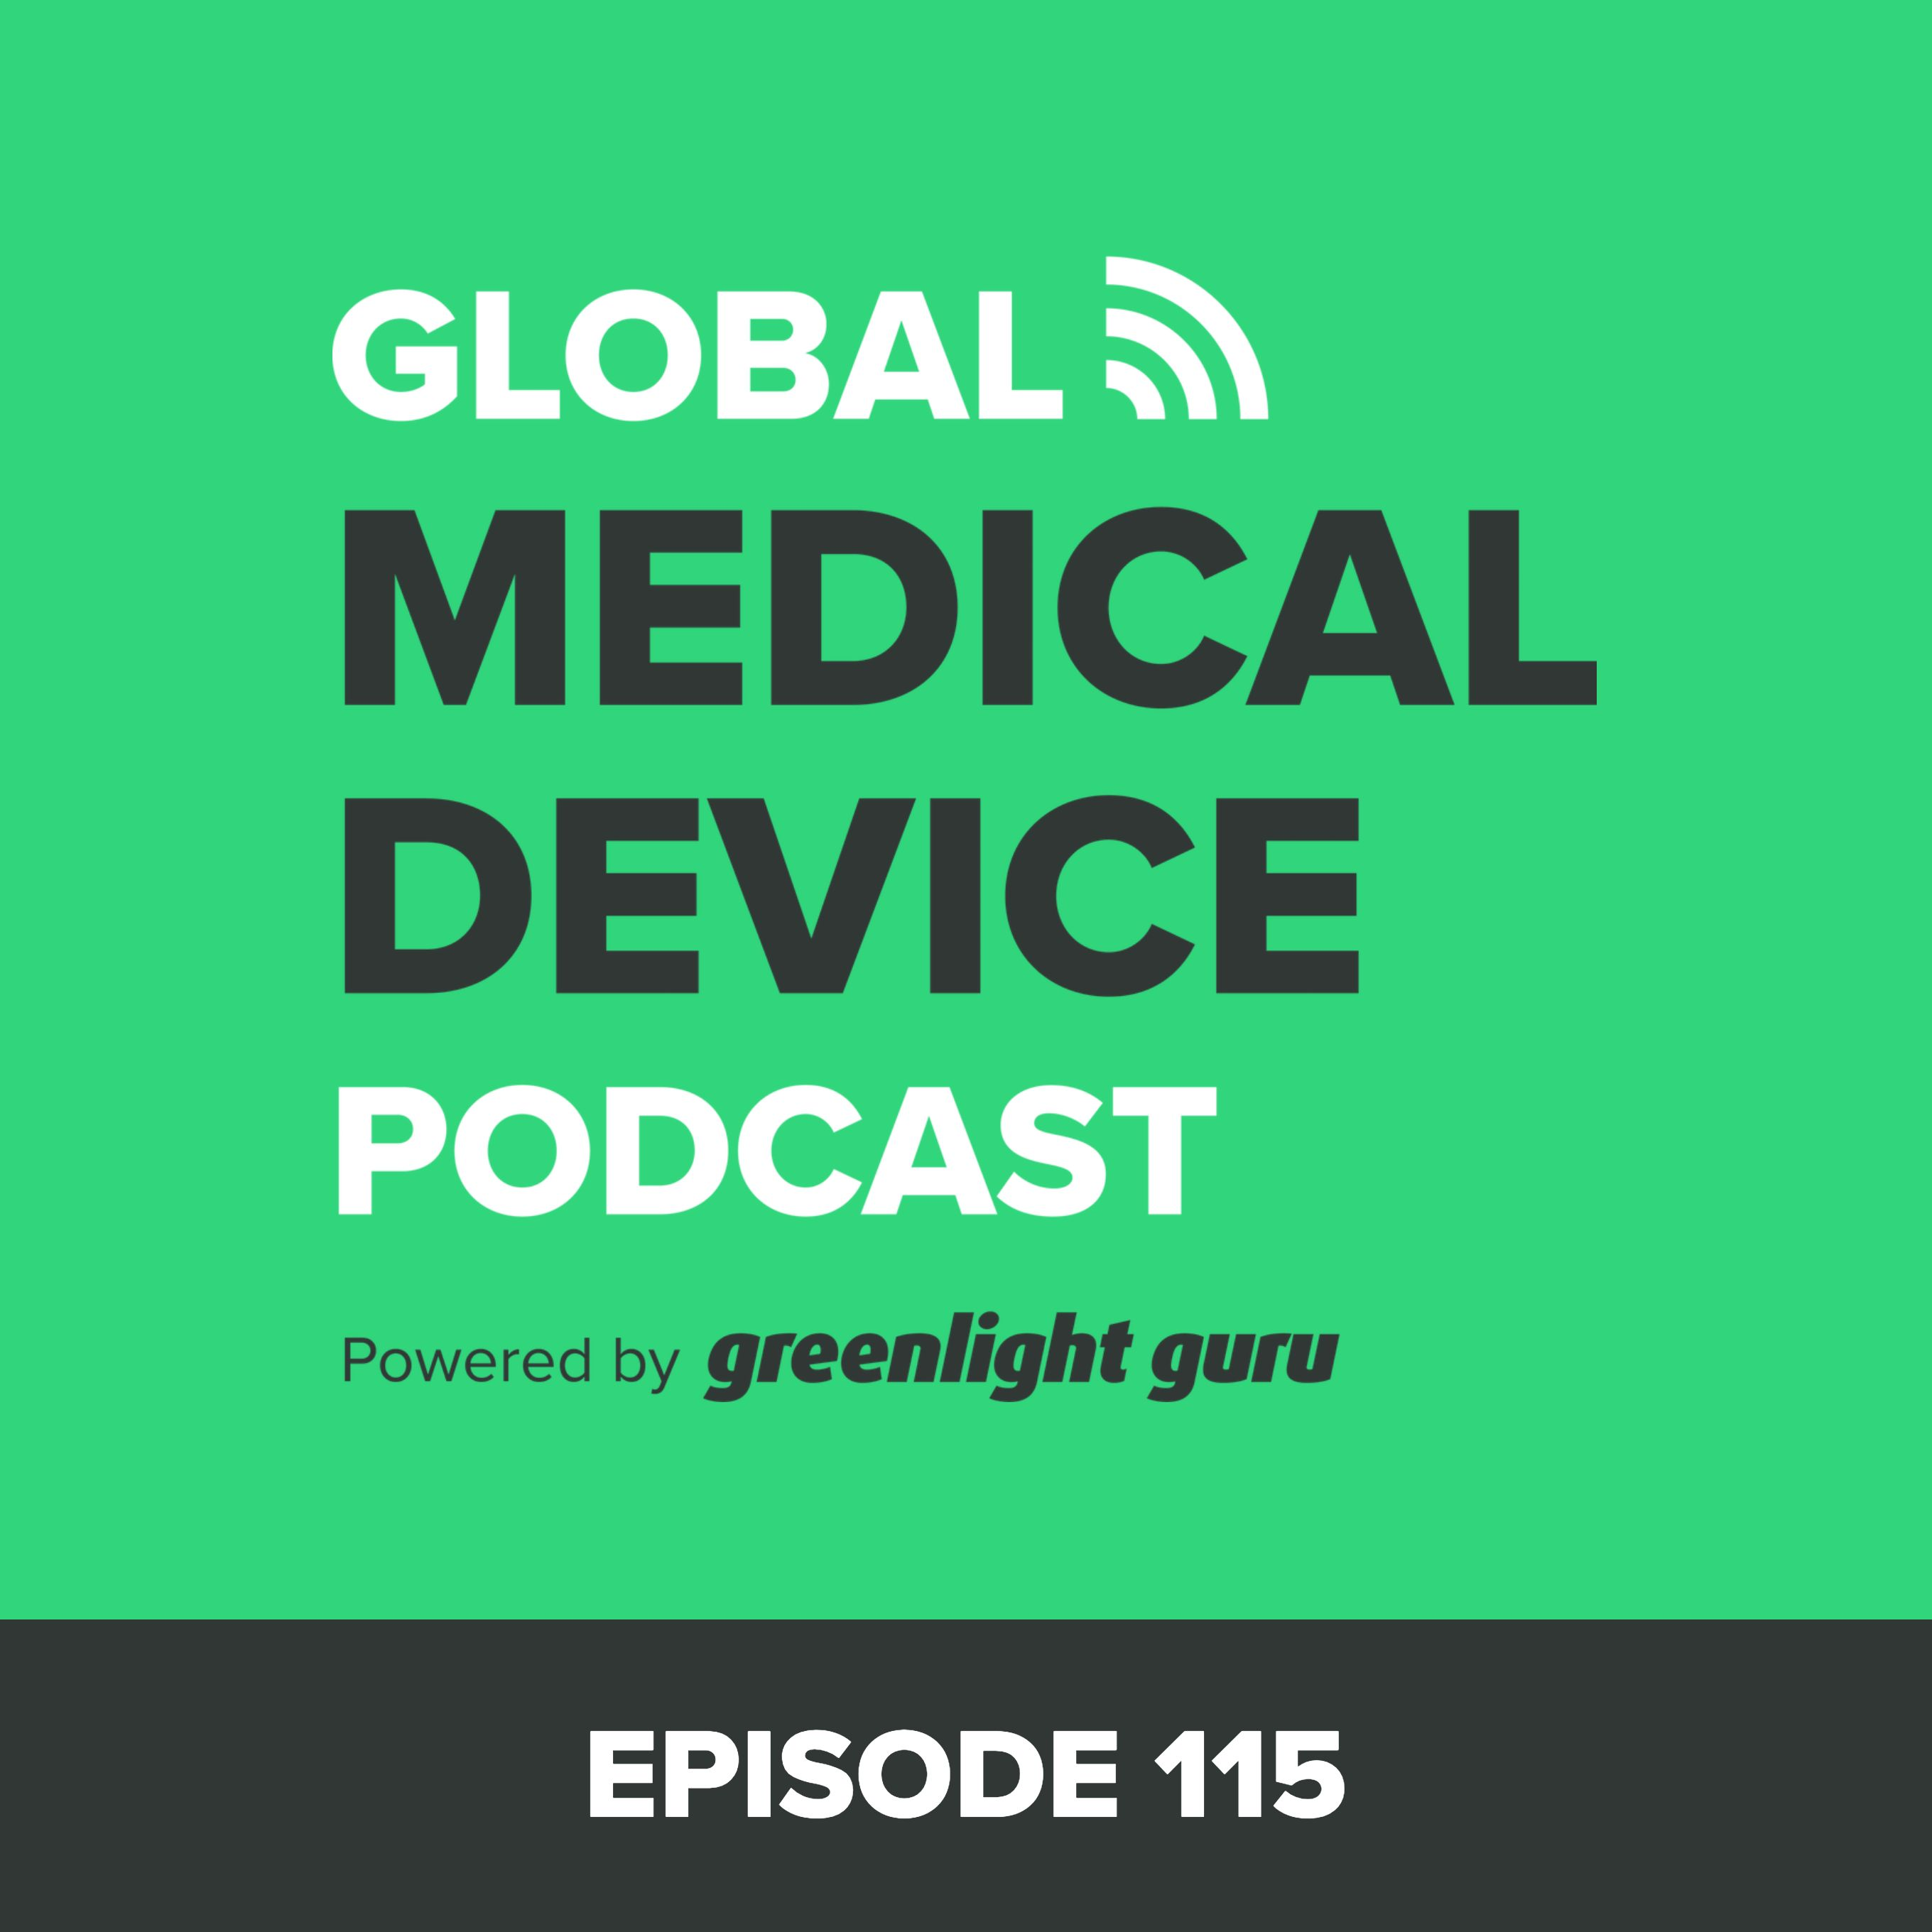 Challenges with Pediatric Medical Devices